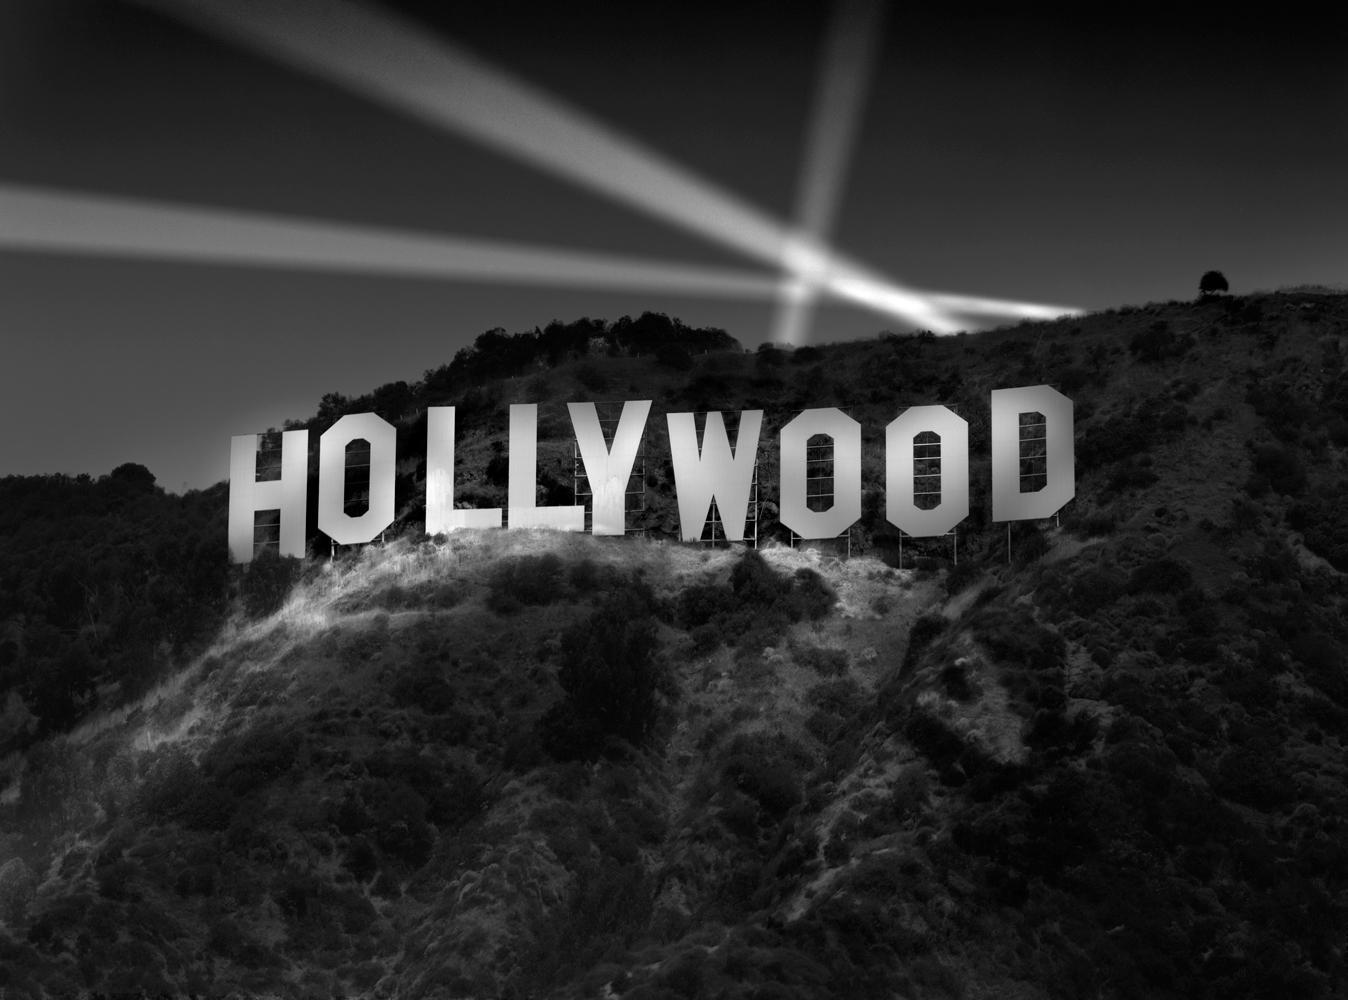 1930s Hollywood